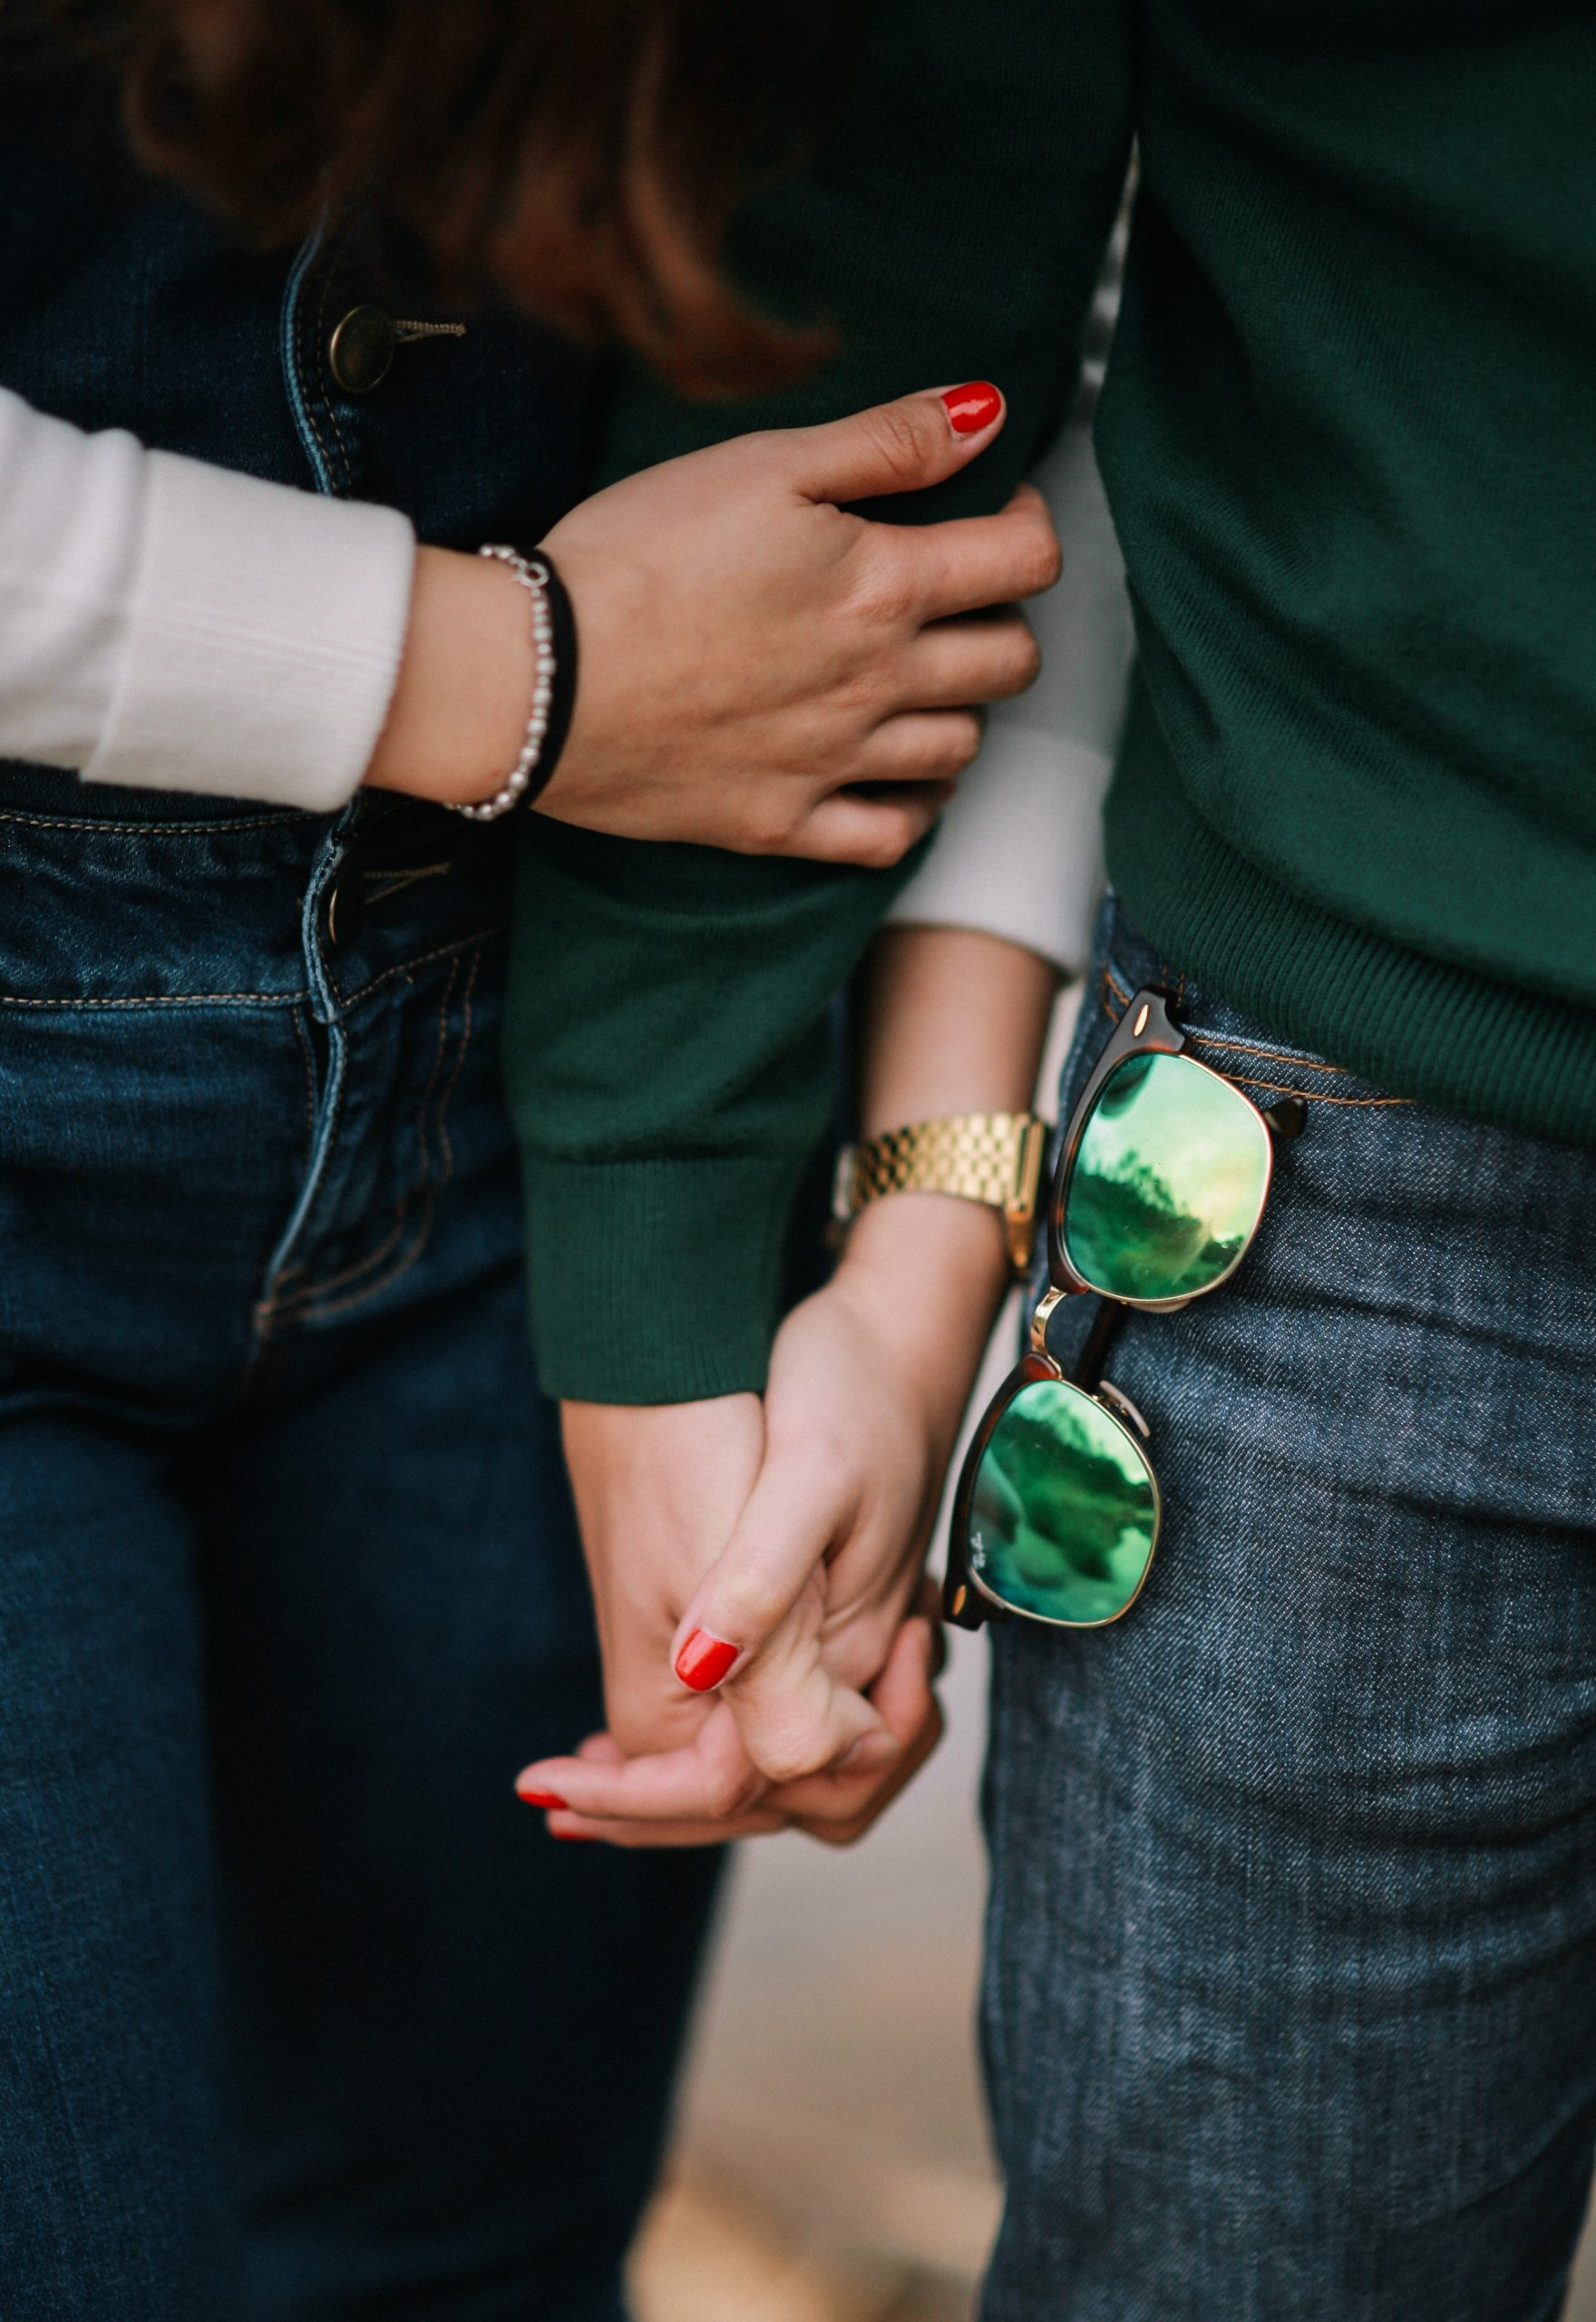 5 Tips for Developing a Healthy Relationship